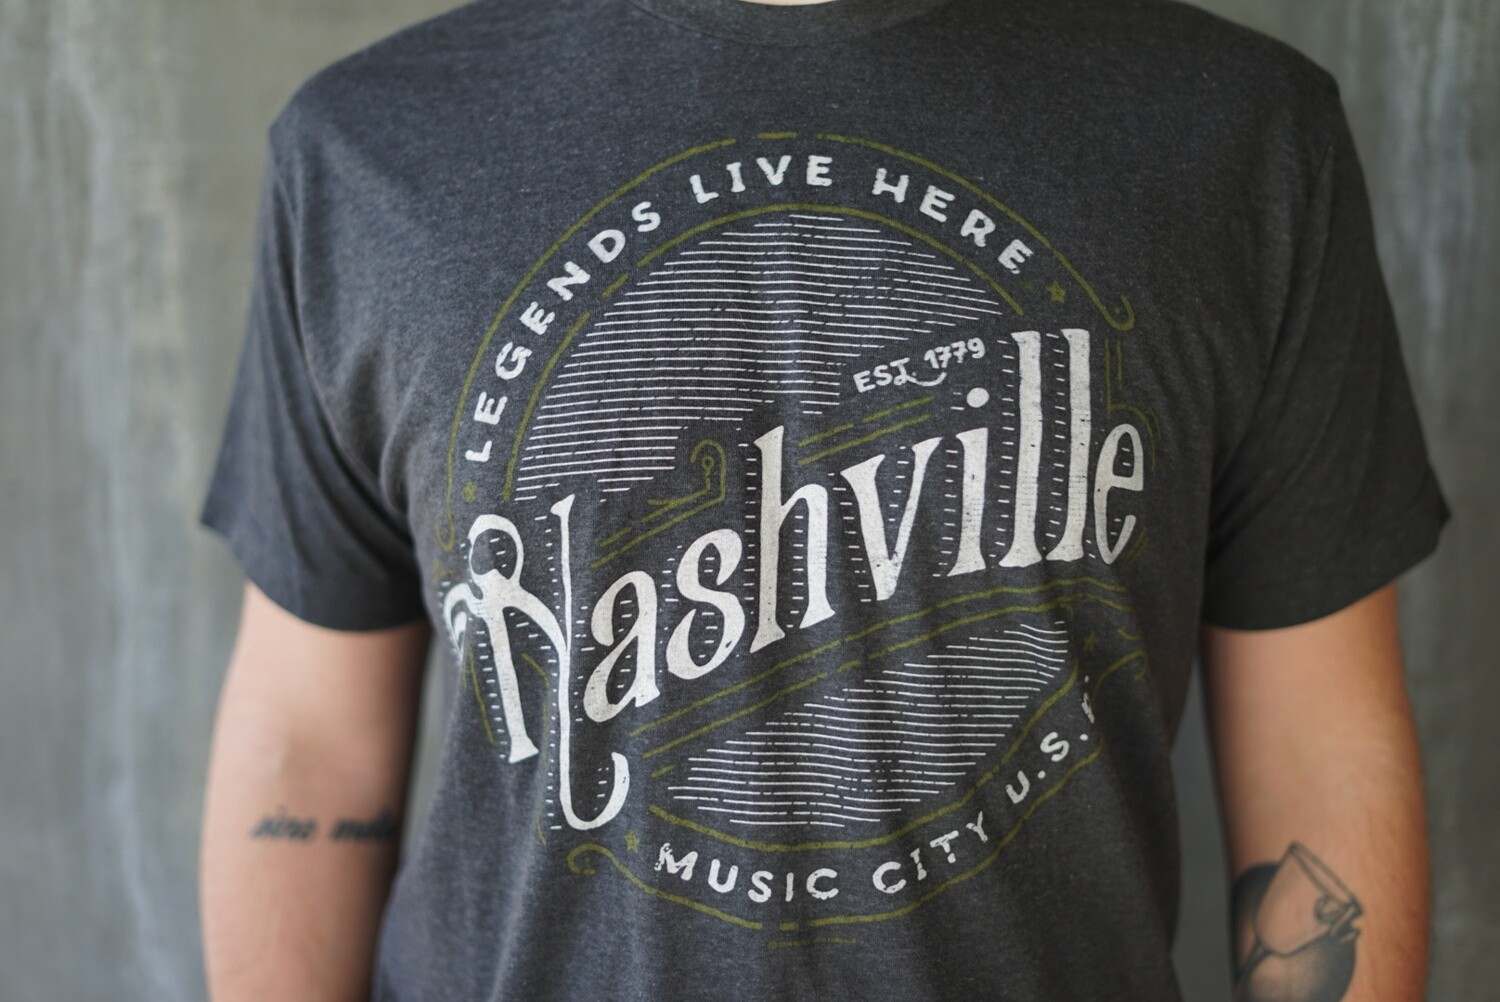 Music City T-Shirt(s)